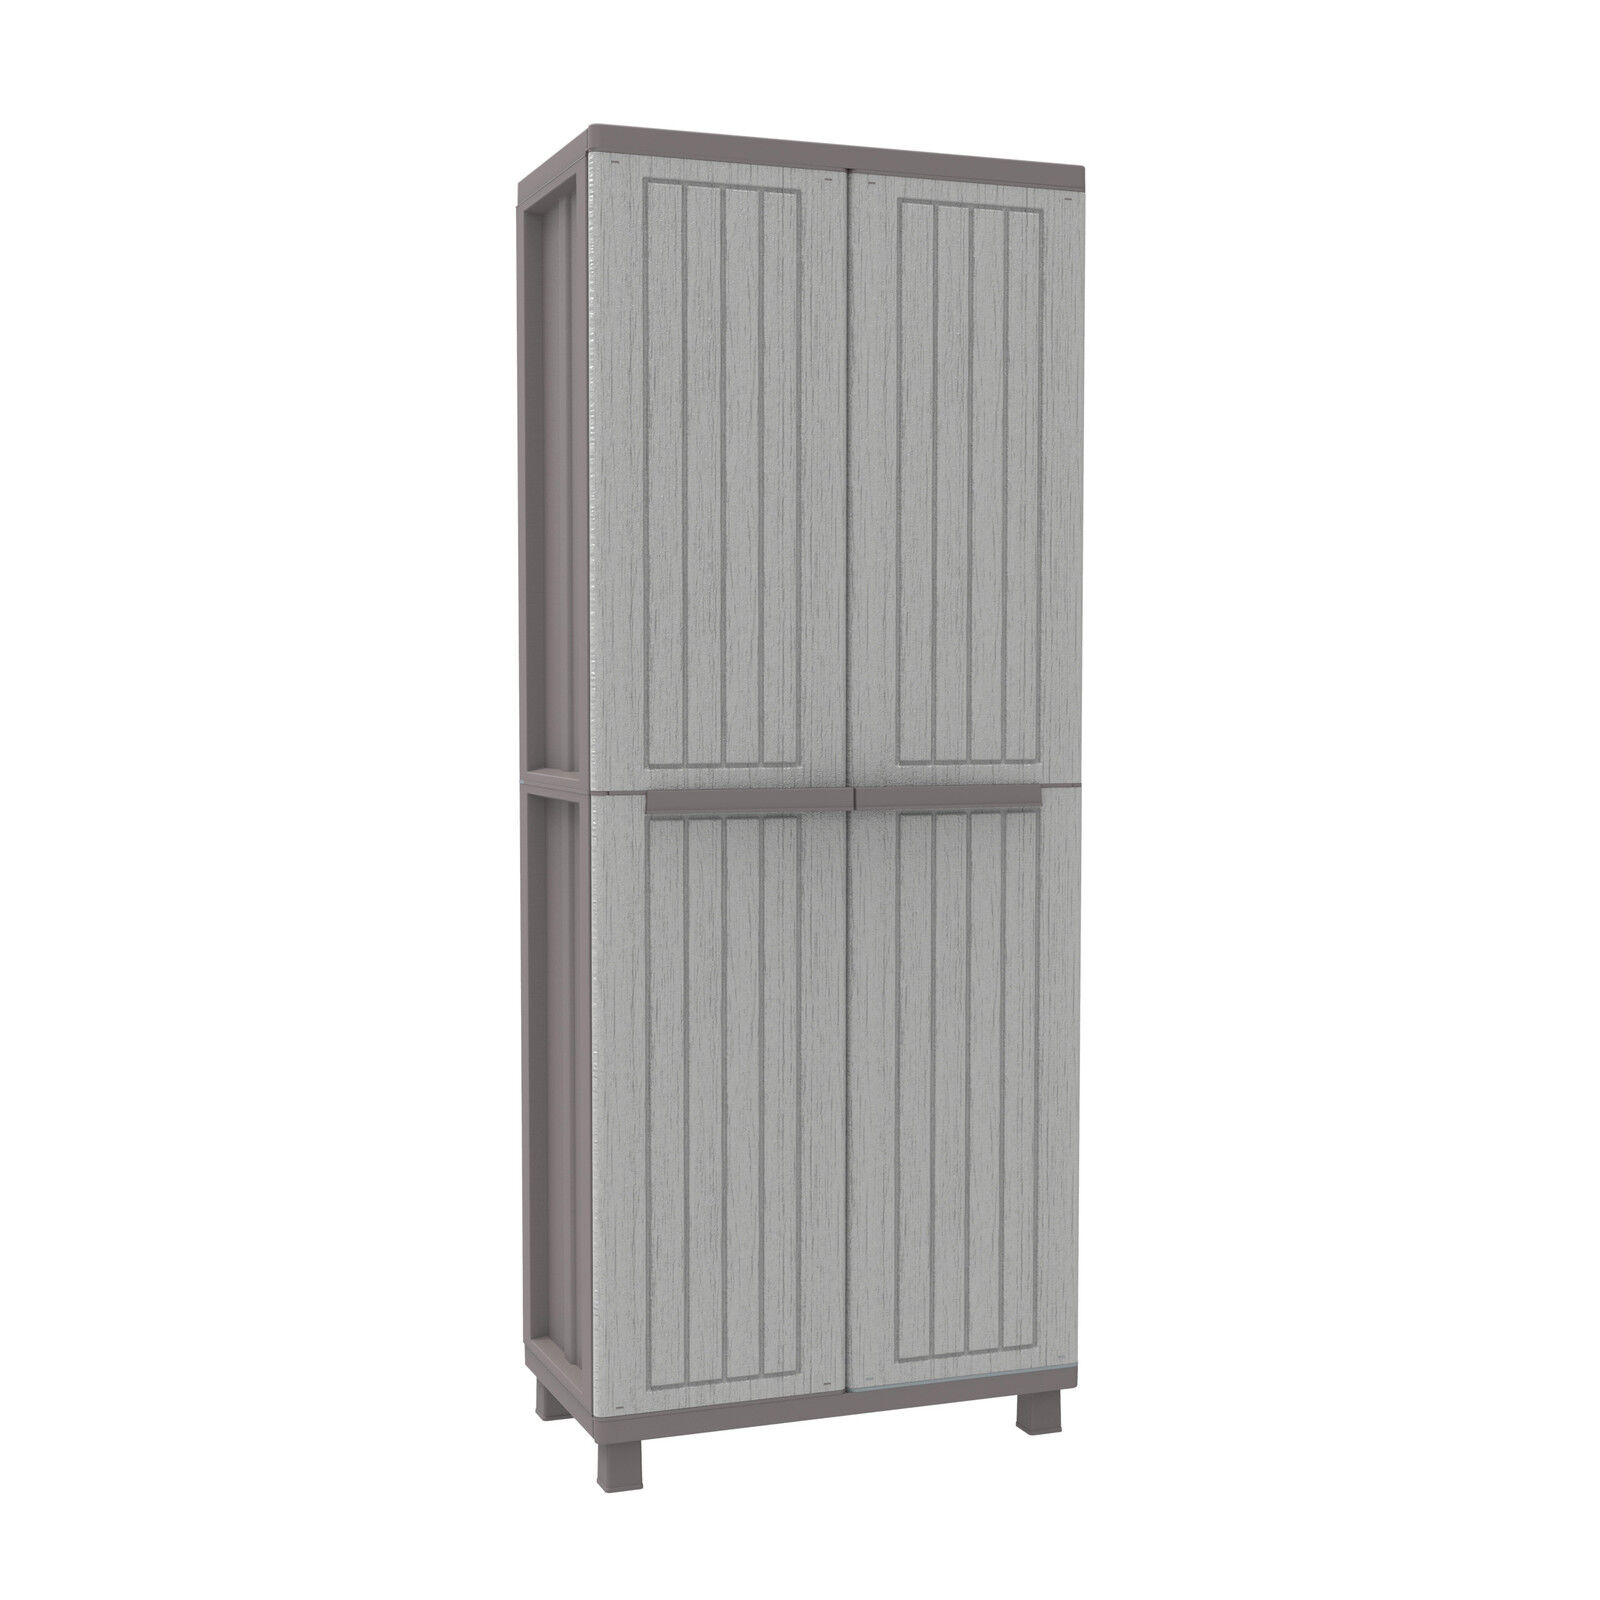 Plastic Storage Cupboard Wood Effect Plastic Garden Storage Cupboard Indoor Or